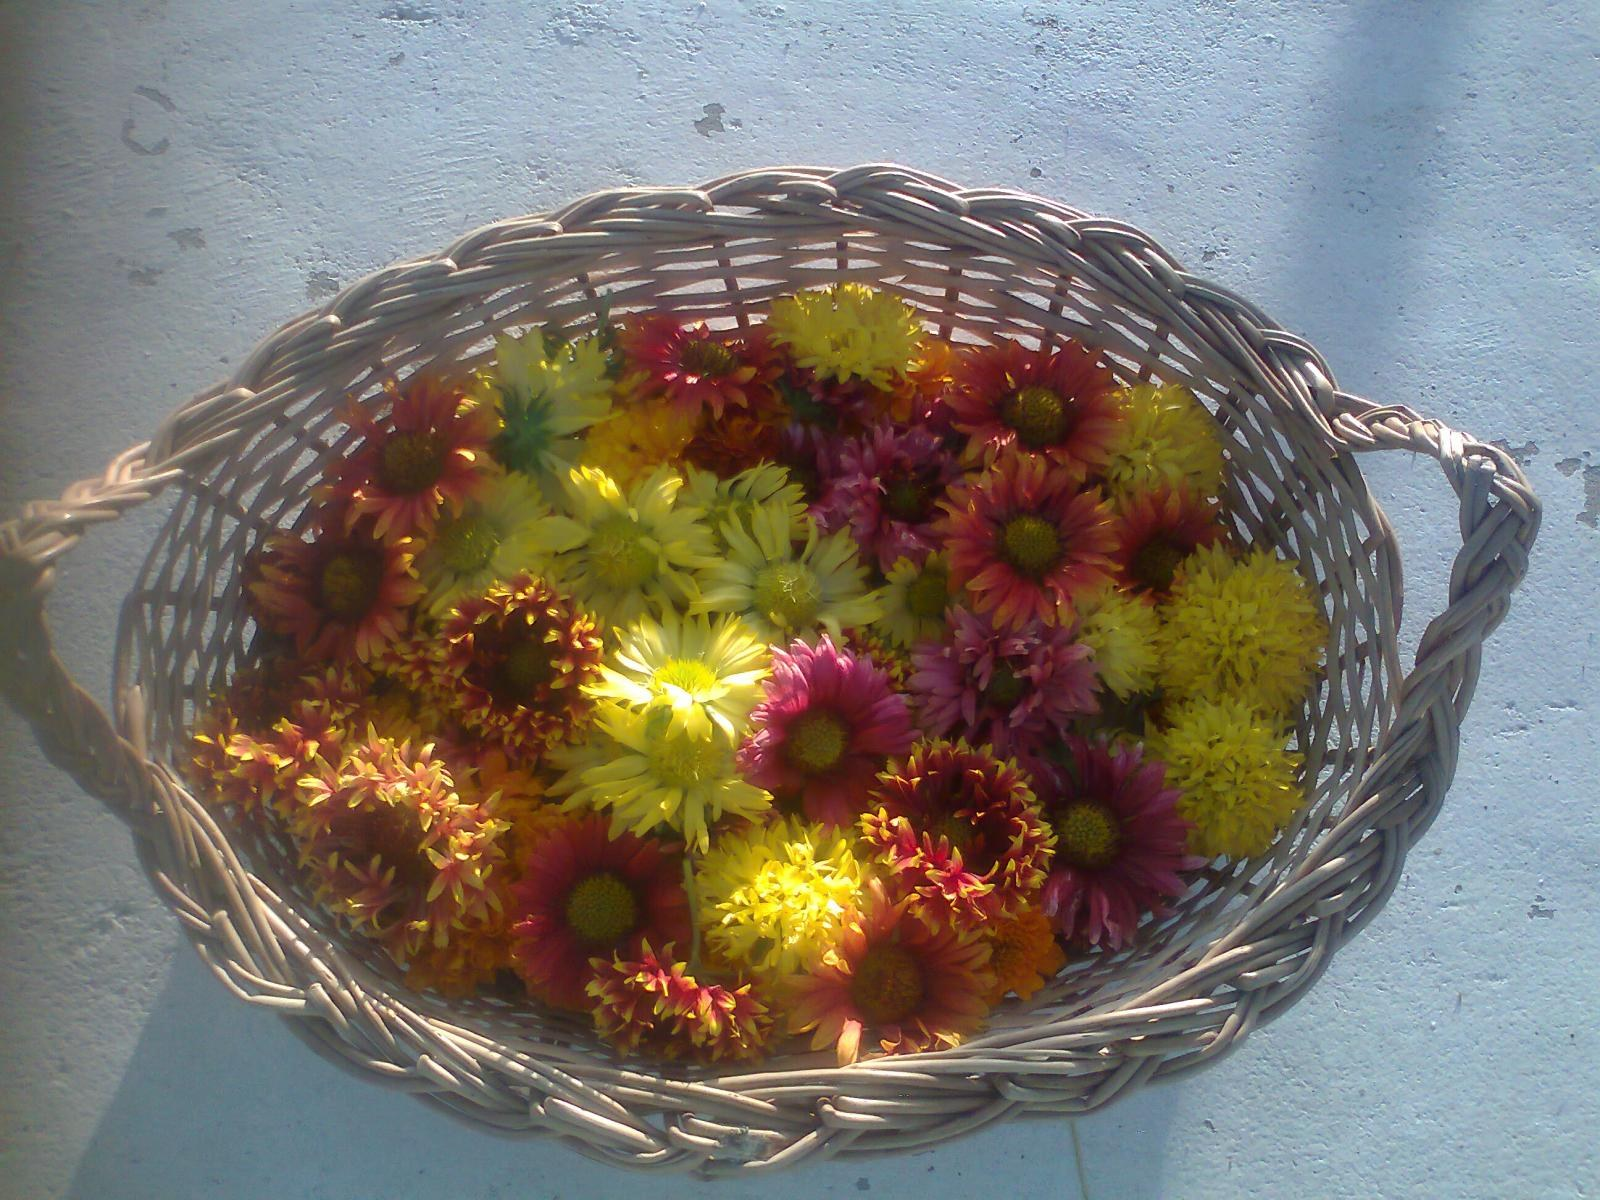 BLANKET FLOWERS READY TO DECORATE ALTARS